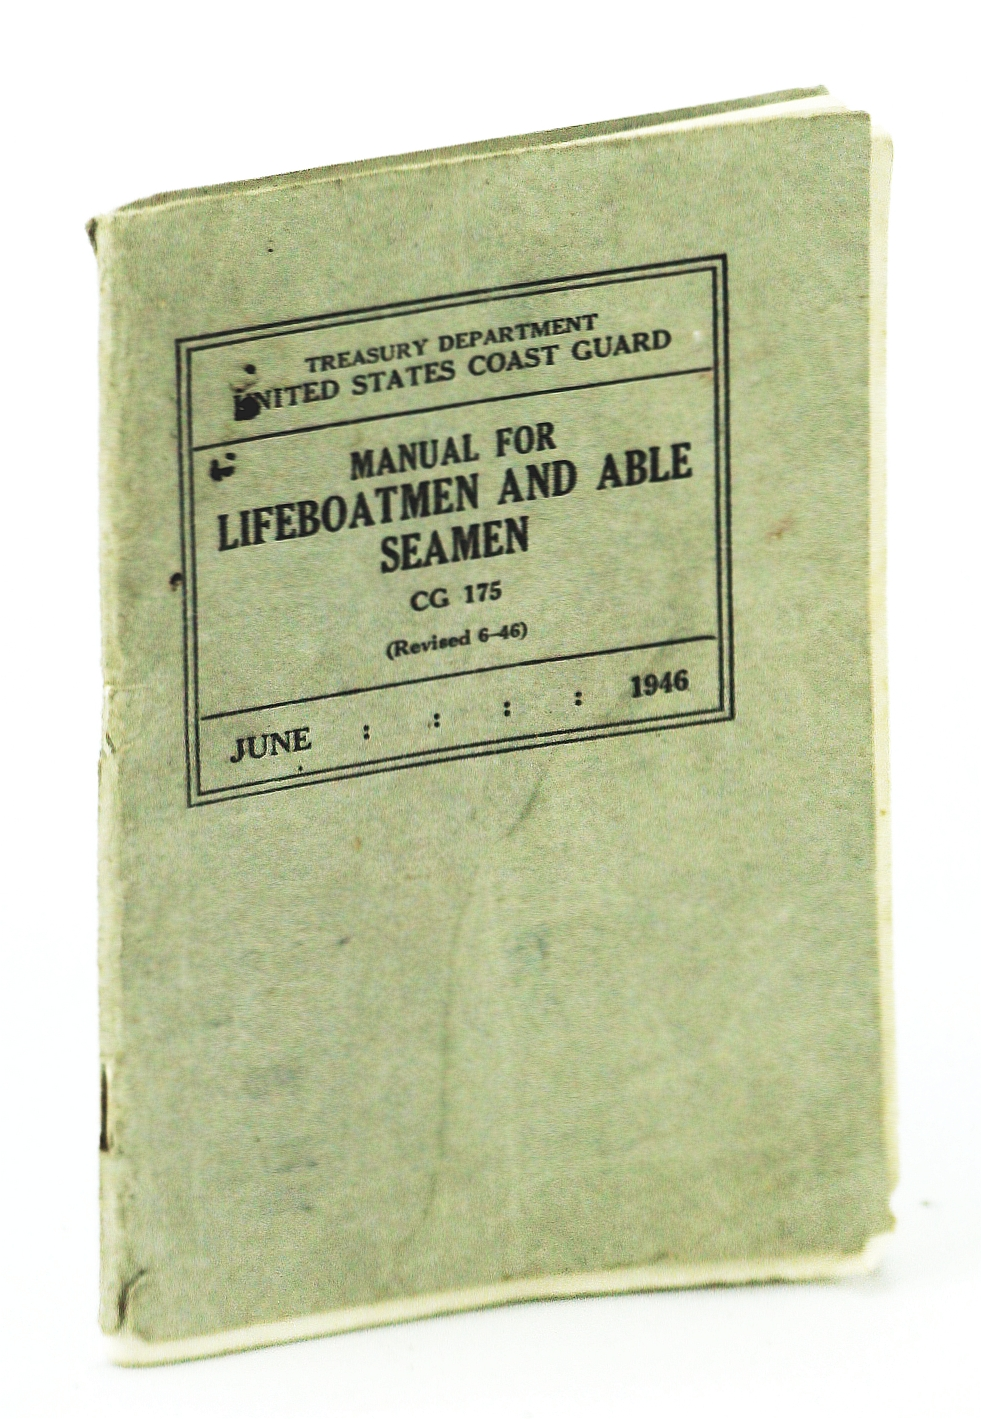 Image for Manual for Lifeboatmen and Able Seamen, CG 175 (Revised 6-46)